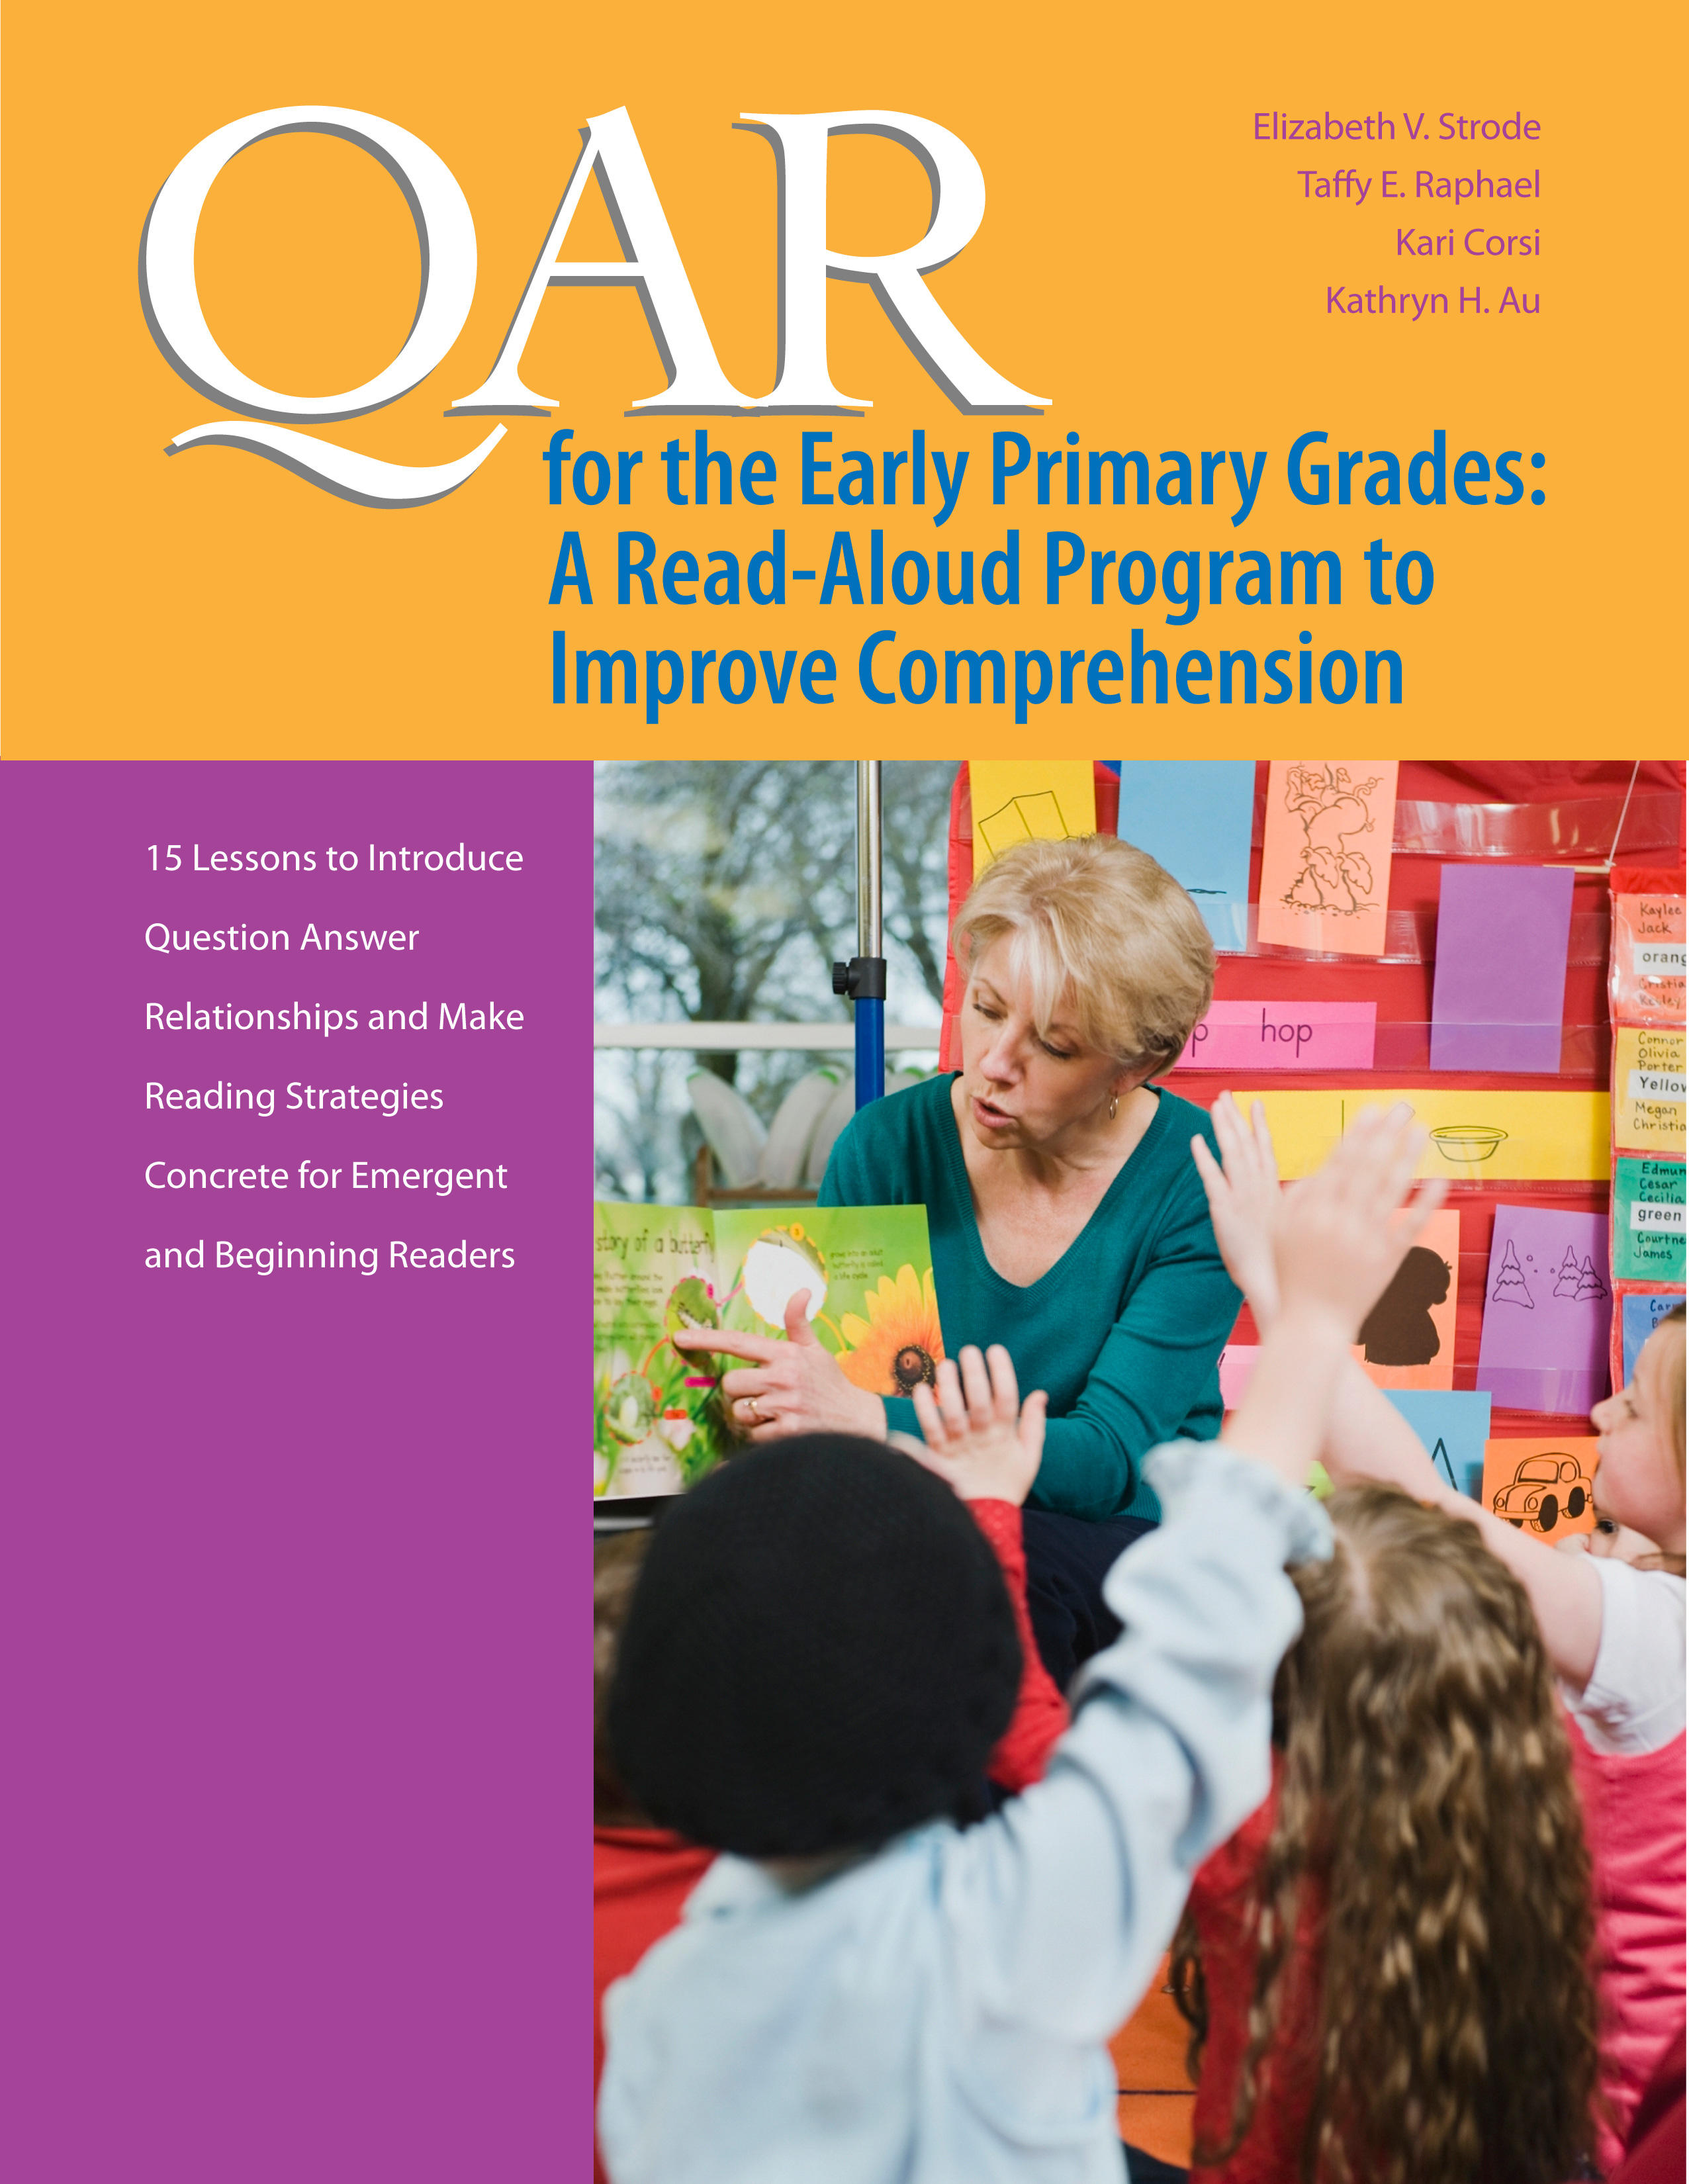 QAR for the Early Primary Grades: A Read-Aloud Program to Improve Comprehension